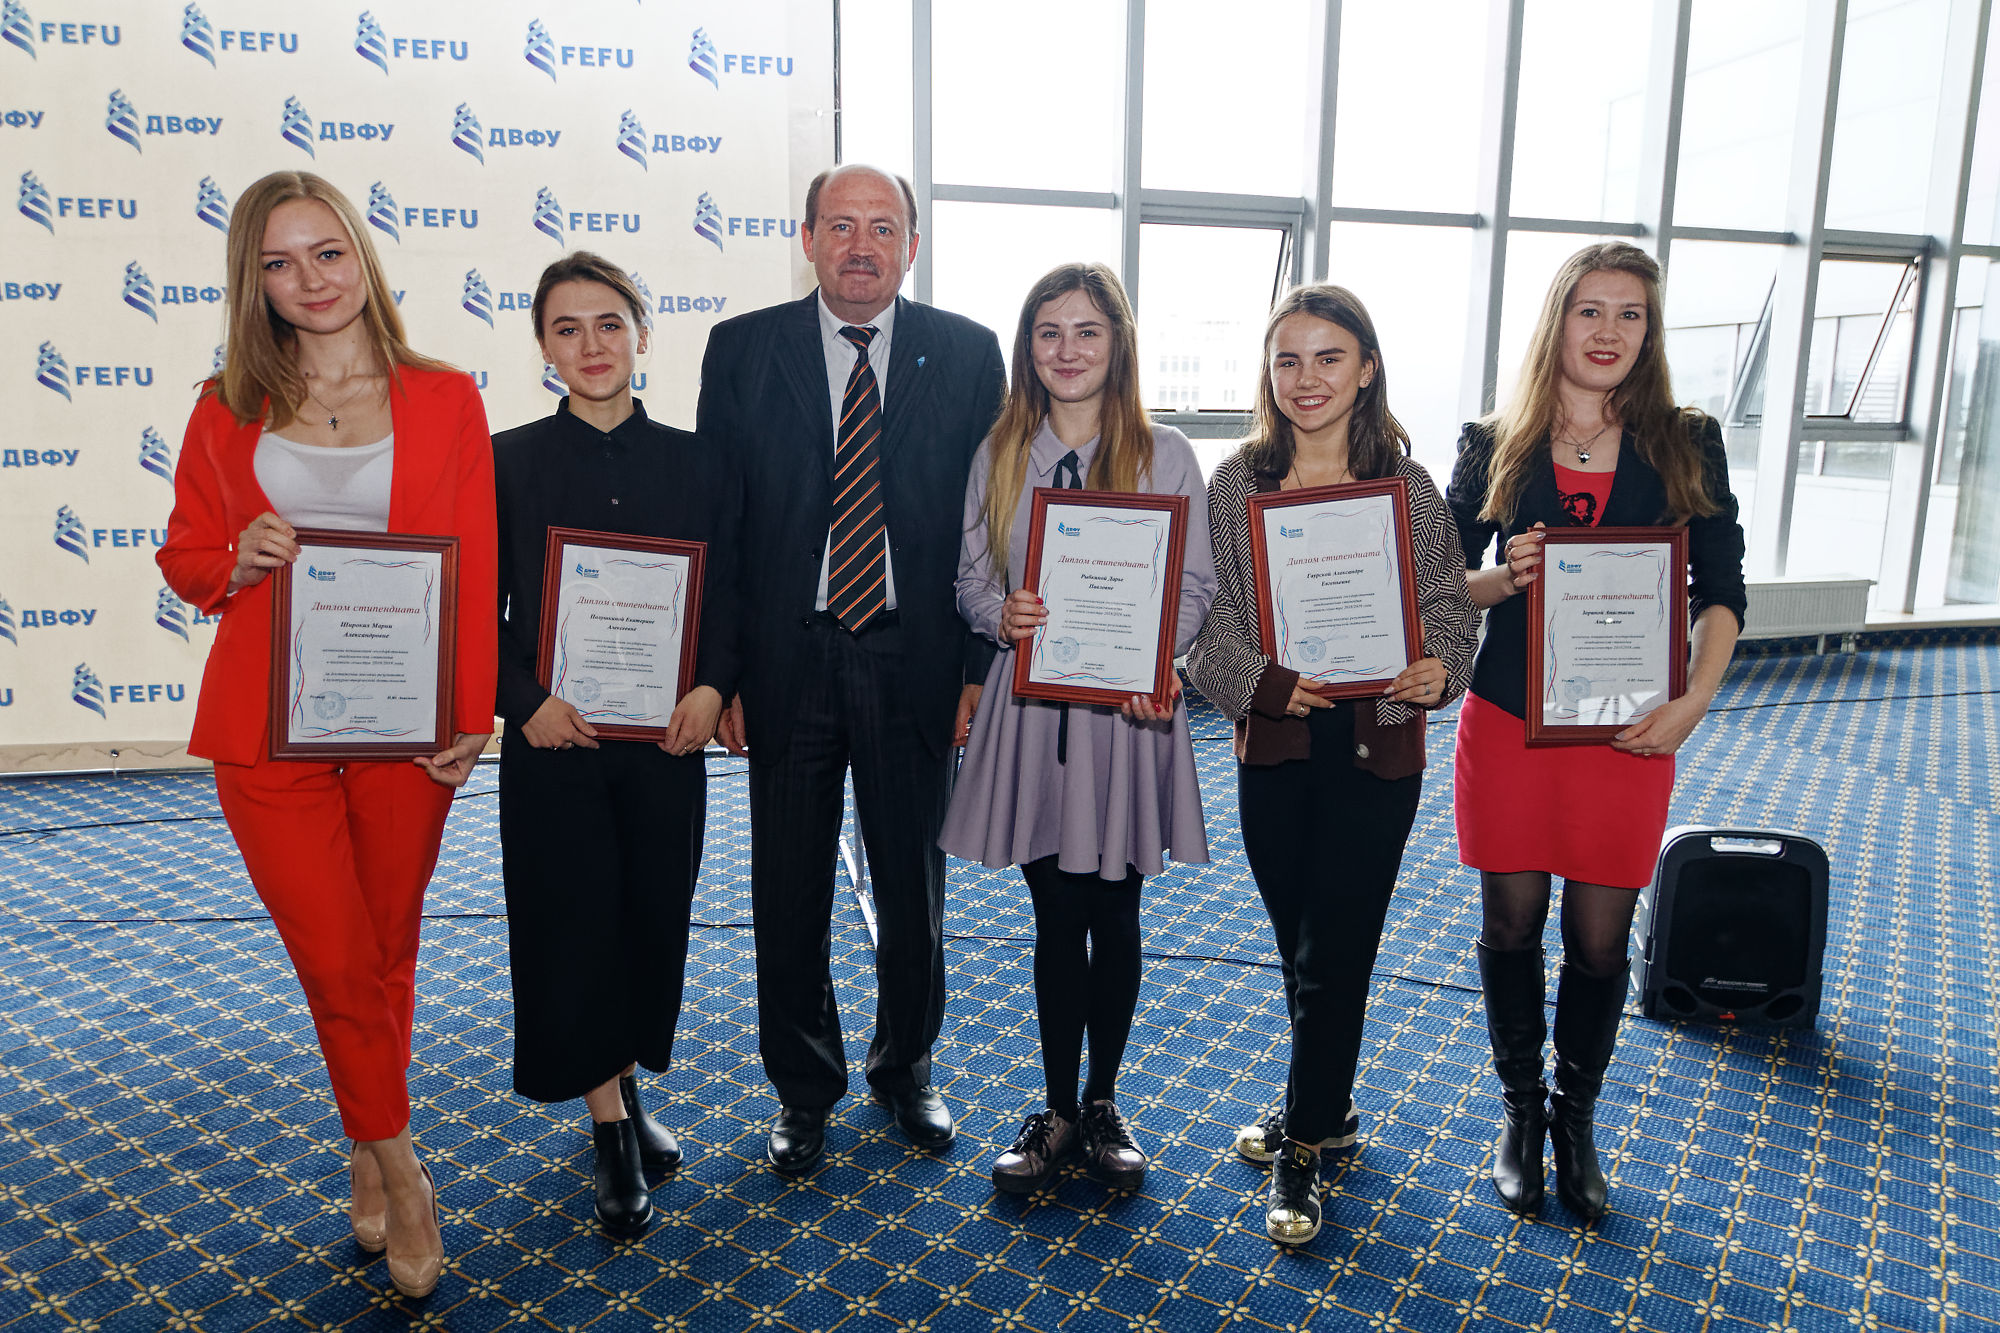 About 1000 students and young scientists received nominal and increased scholarships at FEFU